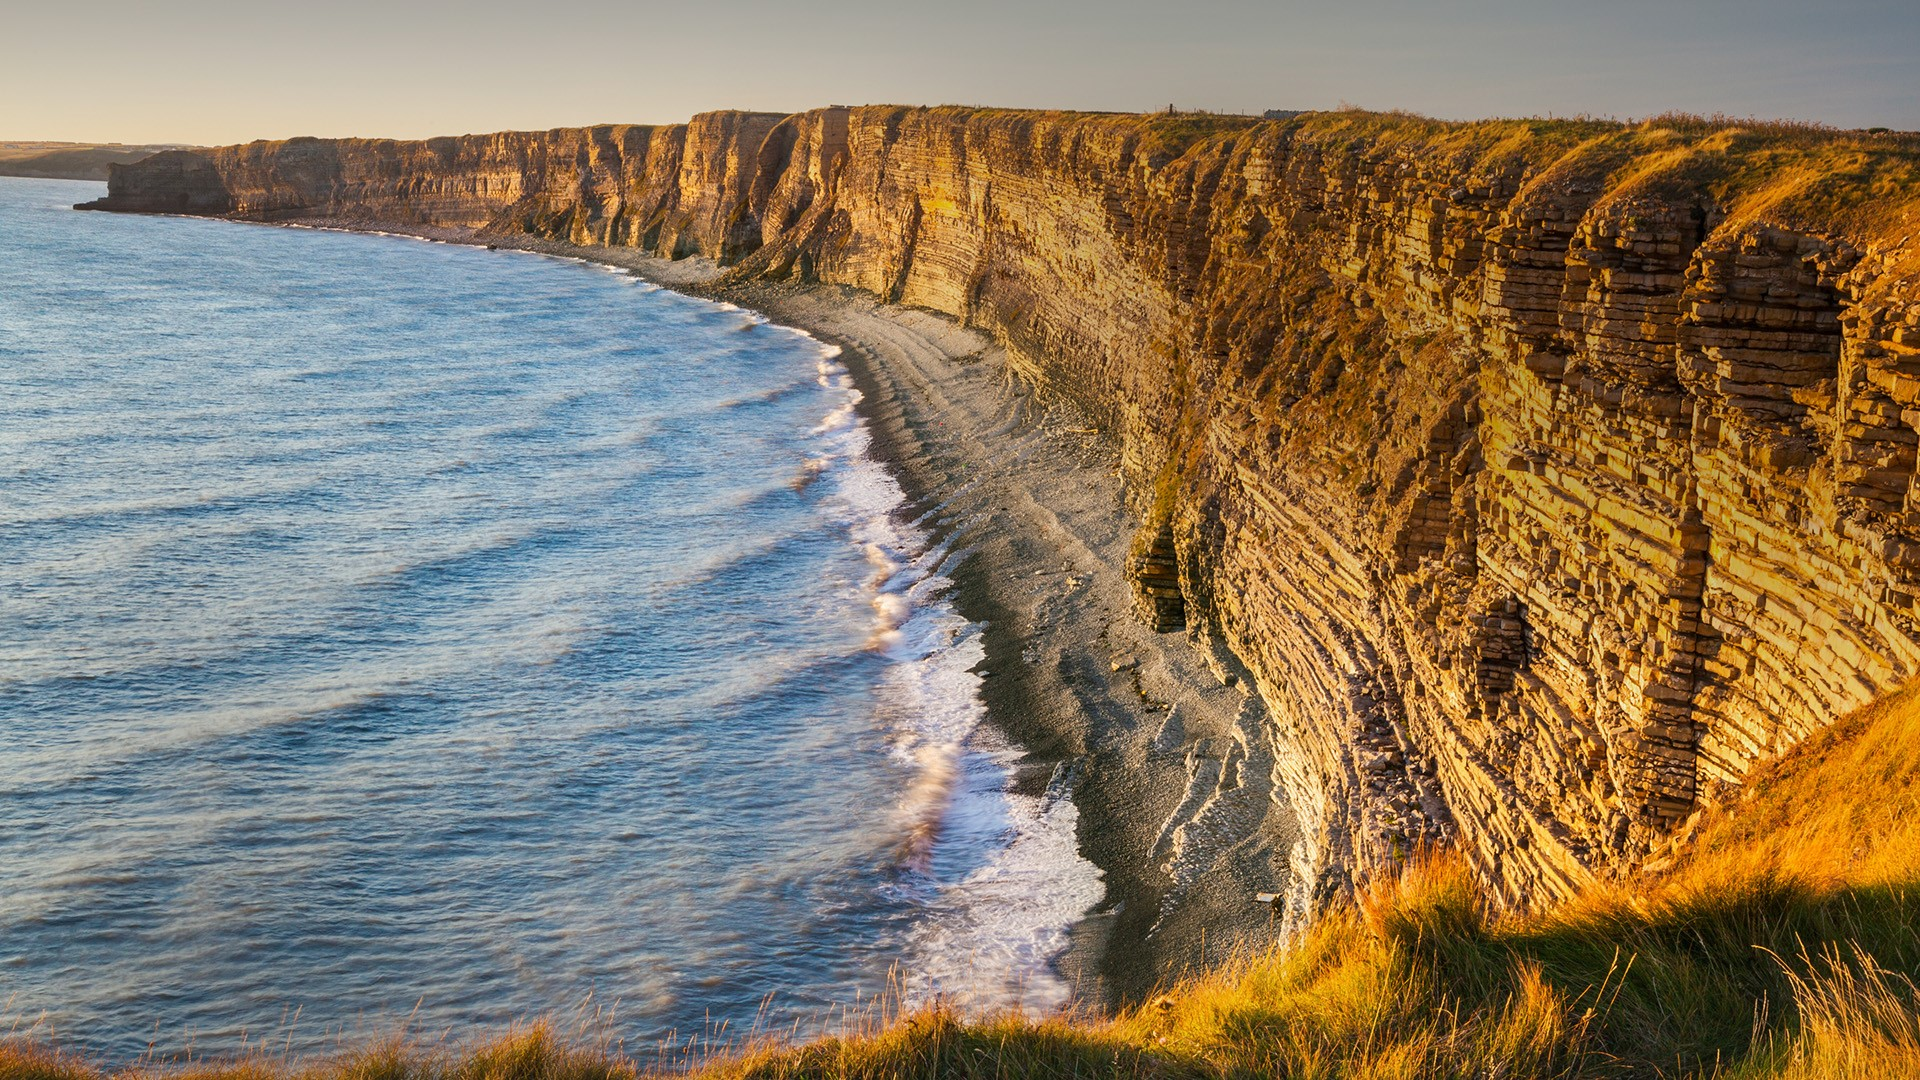 General 1920x1080 nature landscape sky sea water sand mountains sunset drone photo aerial view coast Wales UK